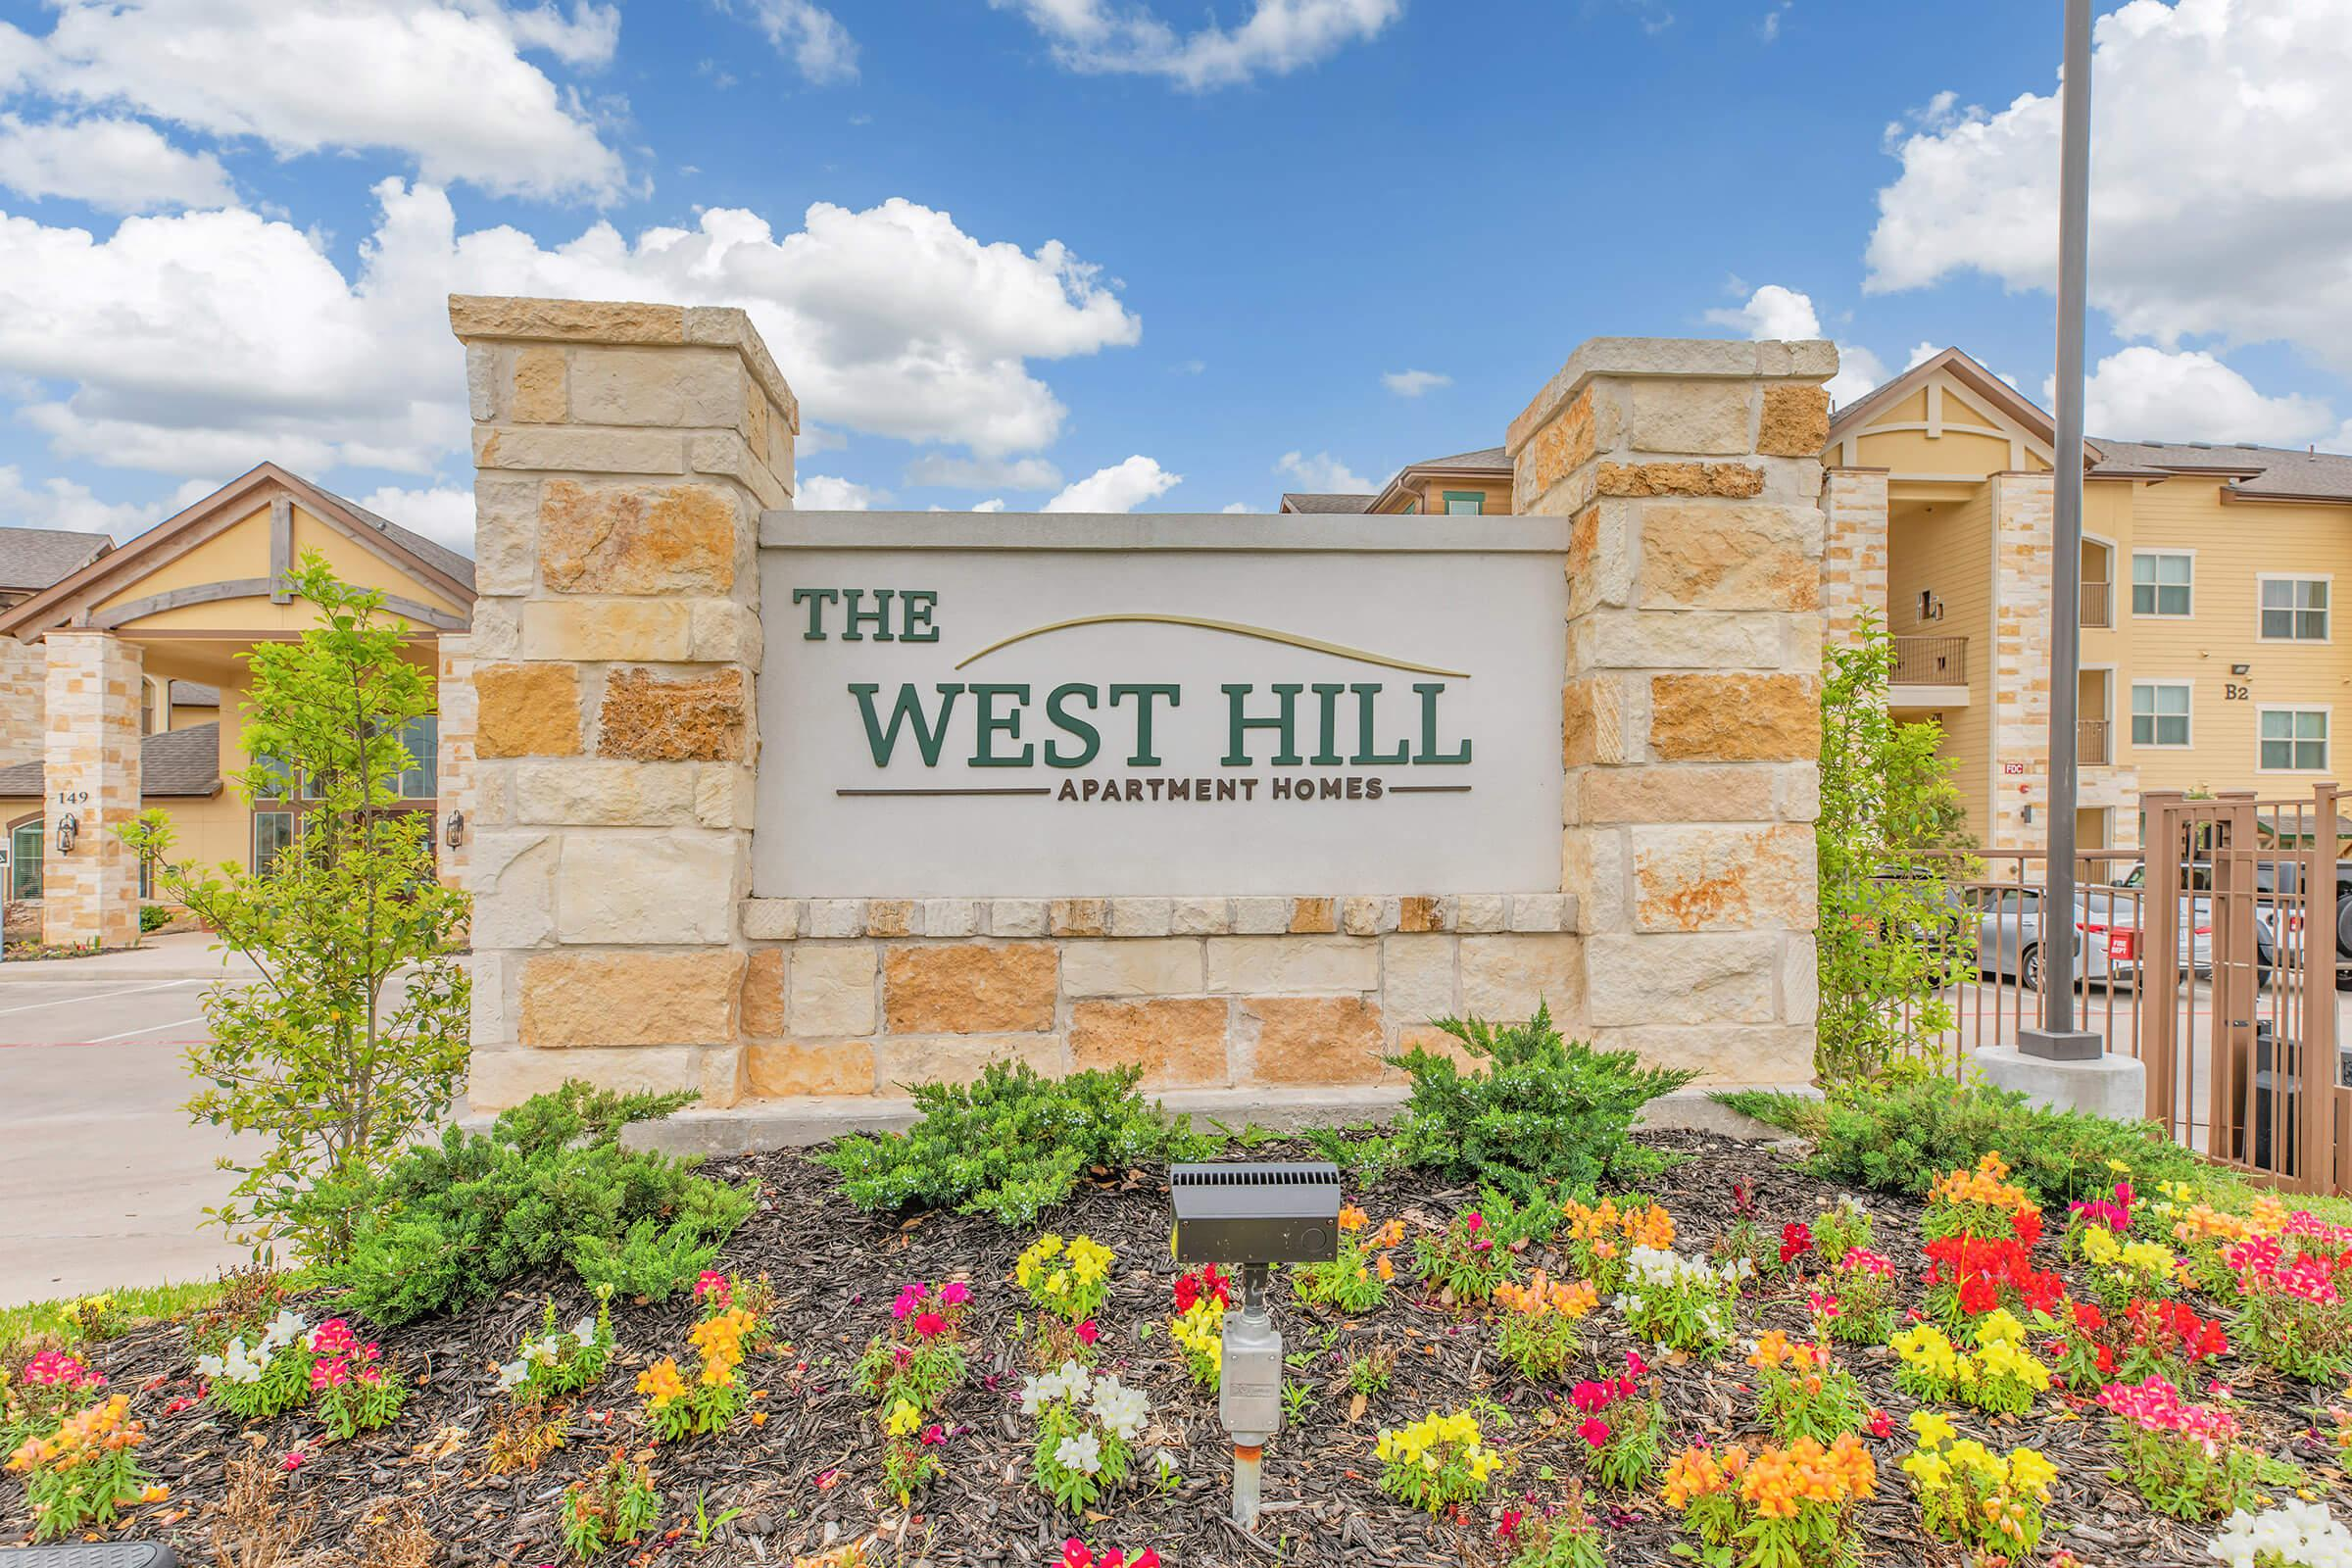 WE'LL SEE YOU SOON AT THE WEST HILL APARTMENTS IN HUNTSVILLE, TX